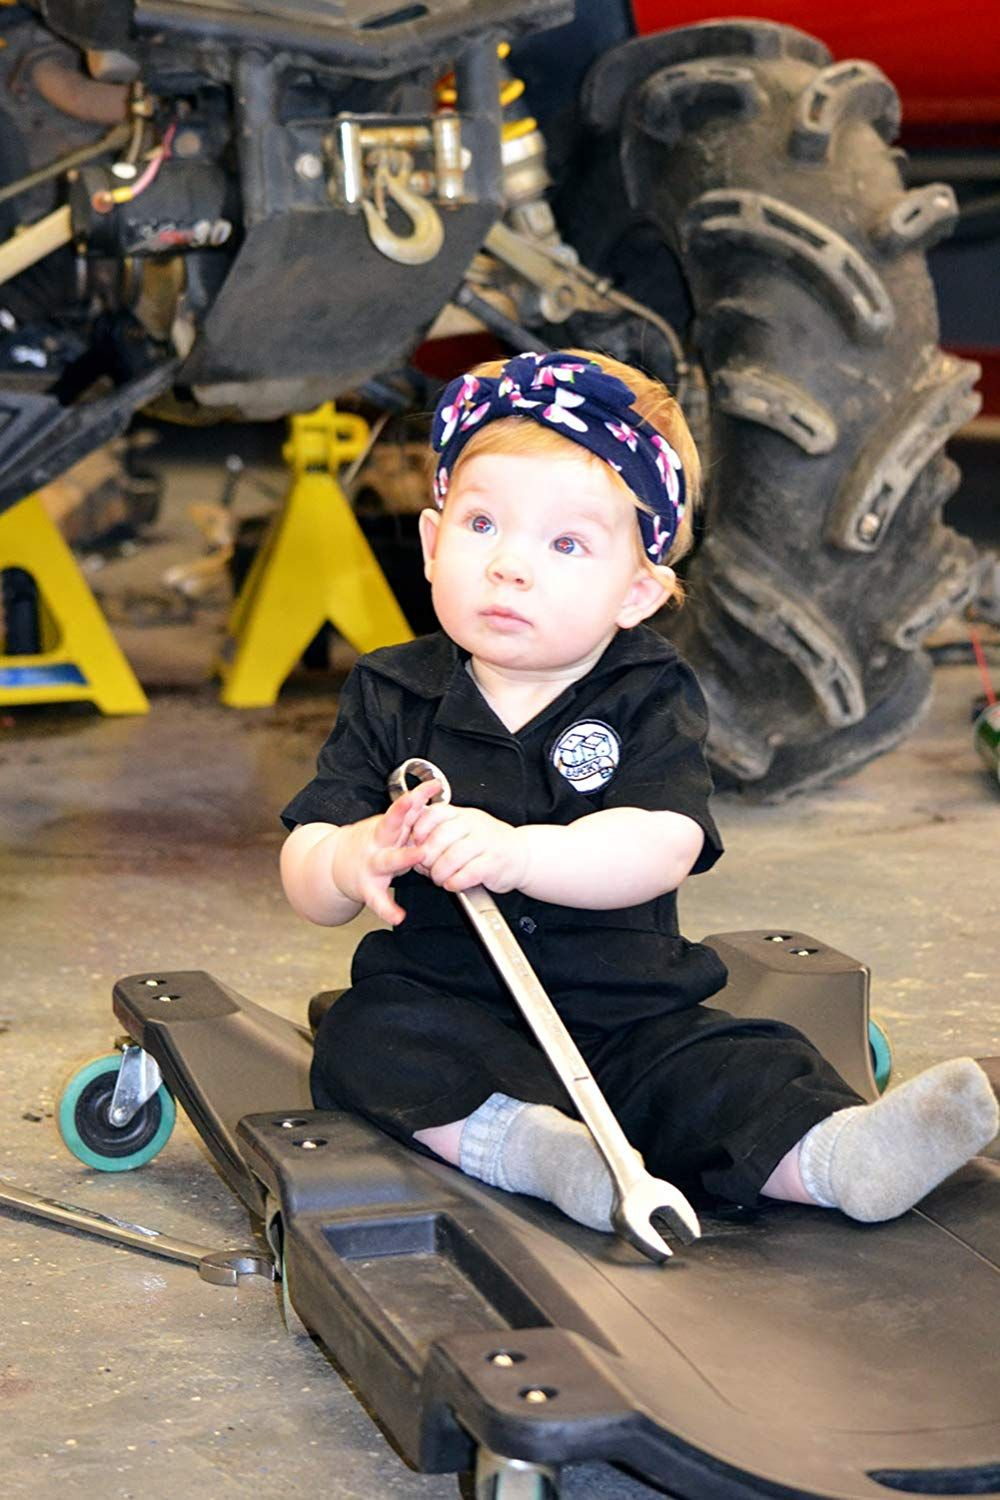 Born to Love Knuckleheads Kids Coverall for